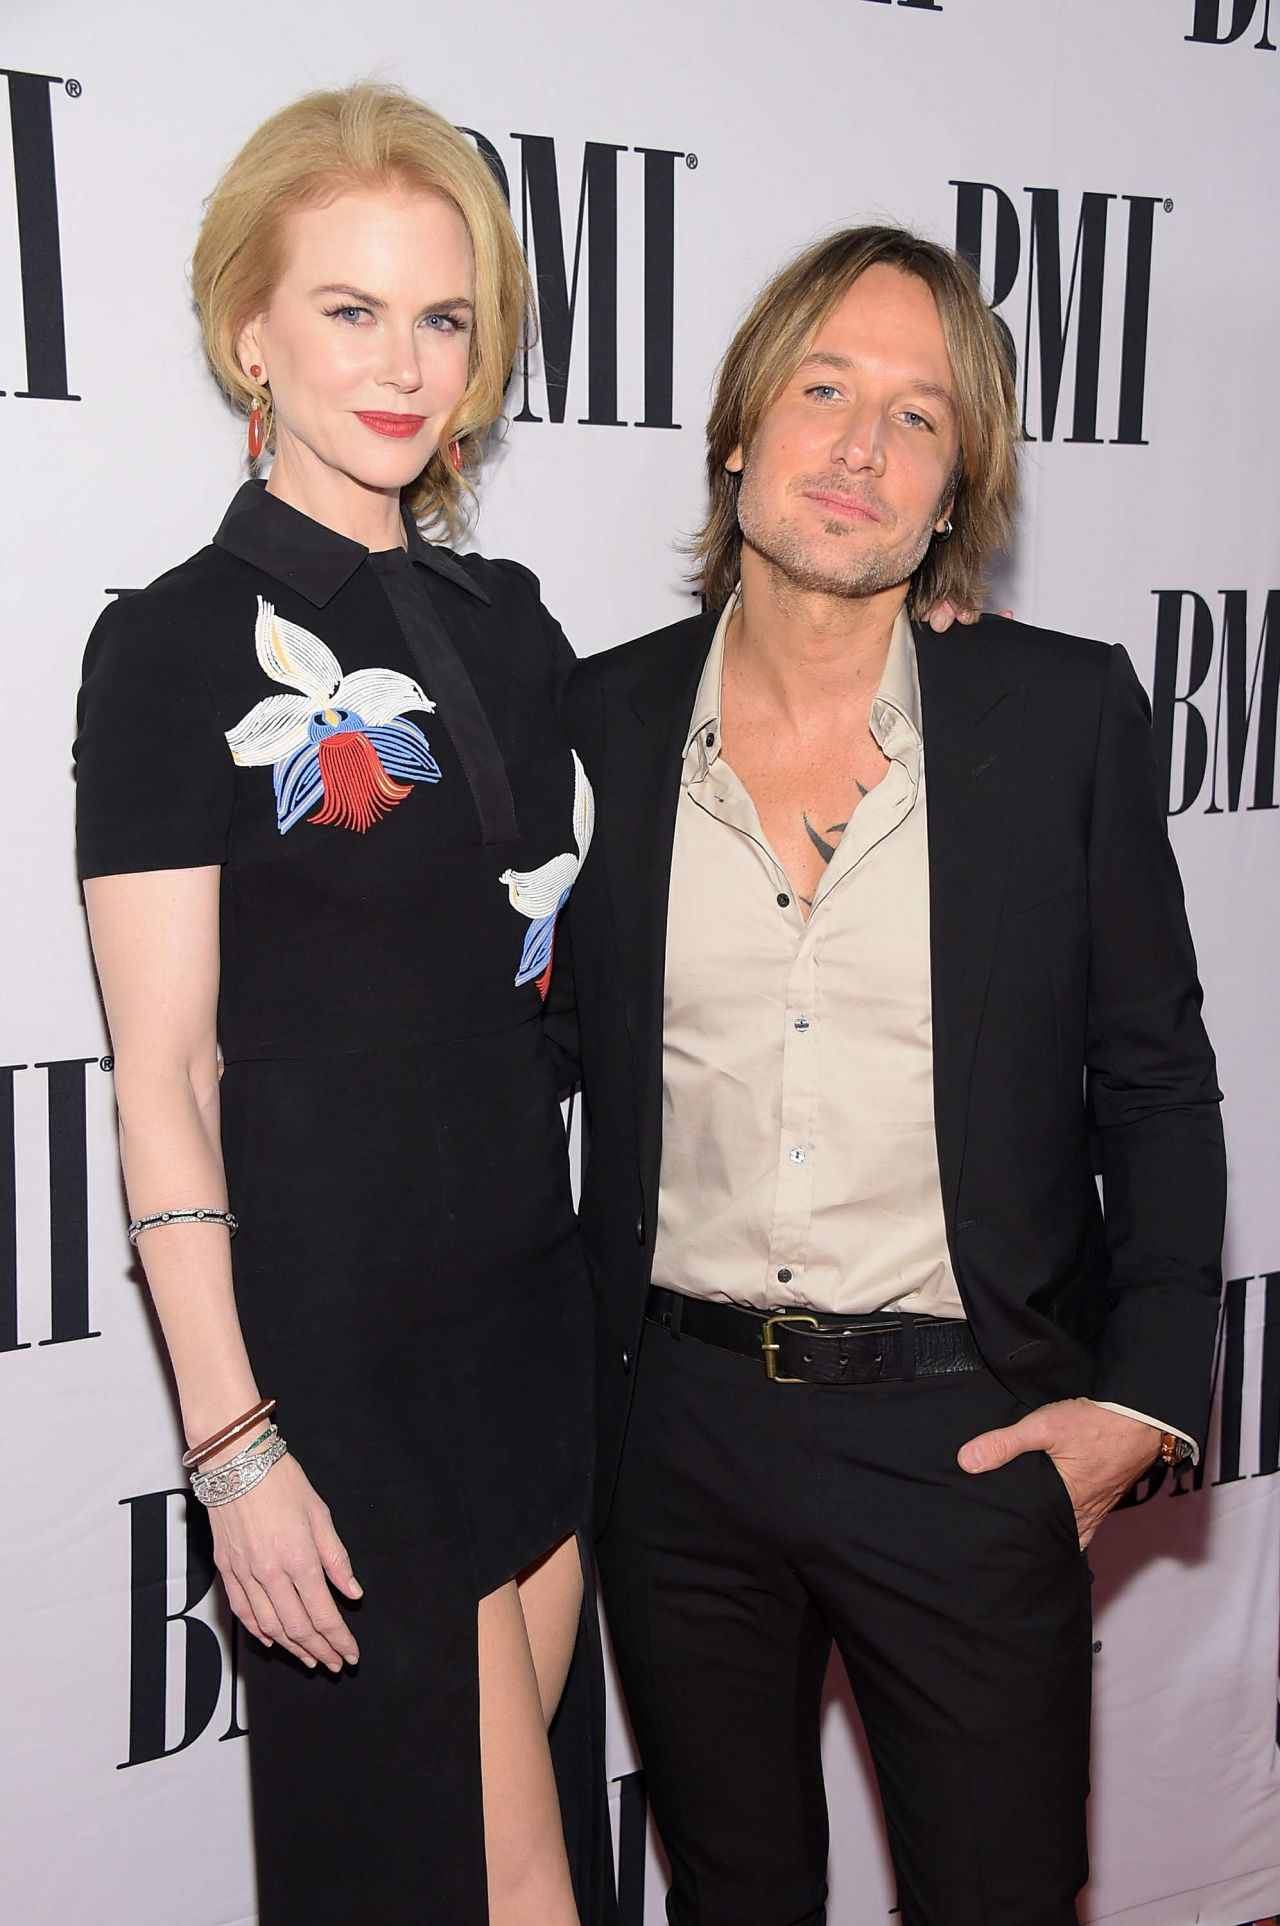 nicole-kidman-2014-bmi-country-awards-in-nashville_6